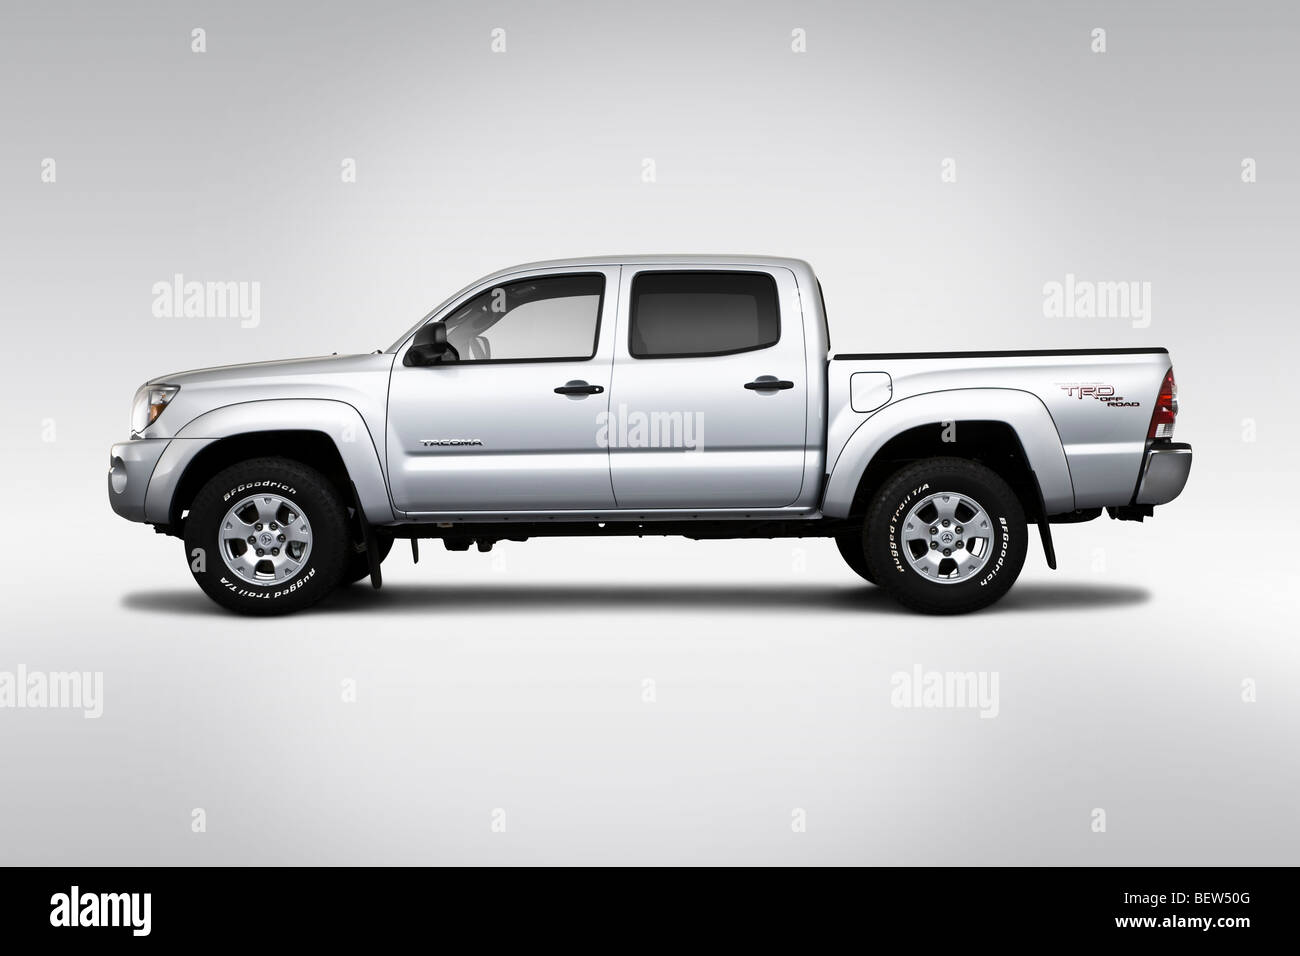 2010 toyota tacoma v6 in silver drivers side profile